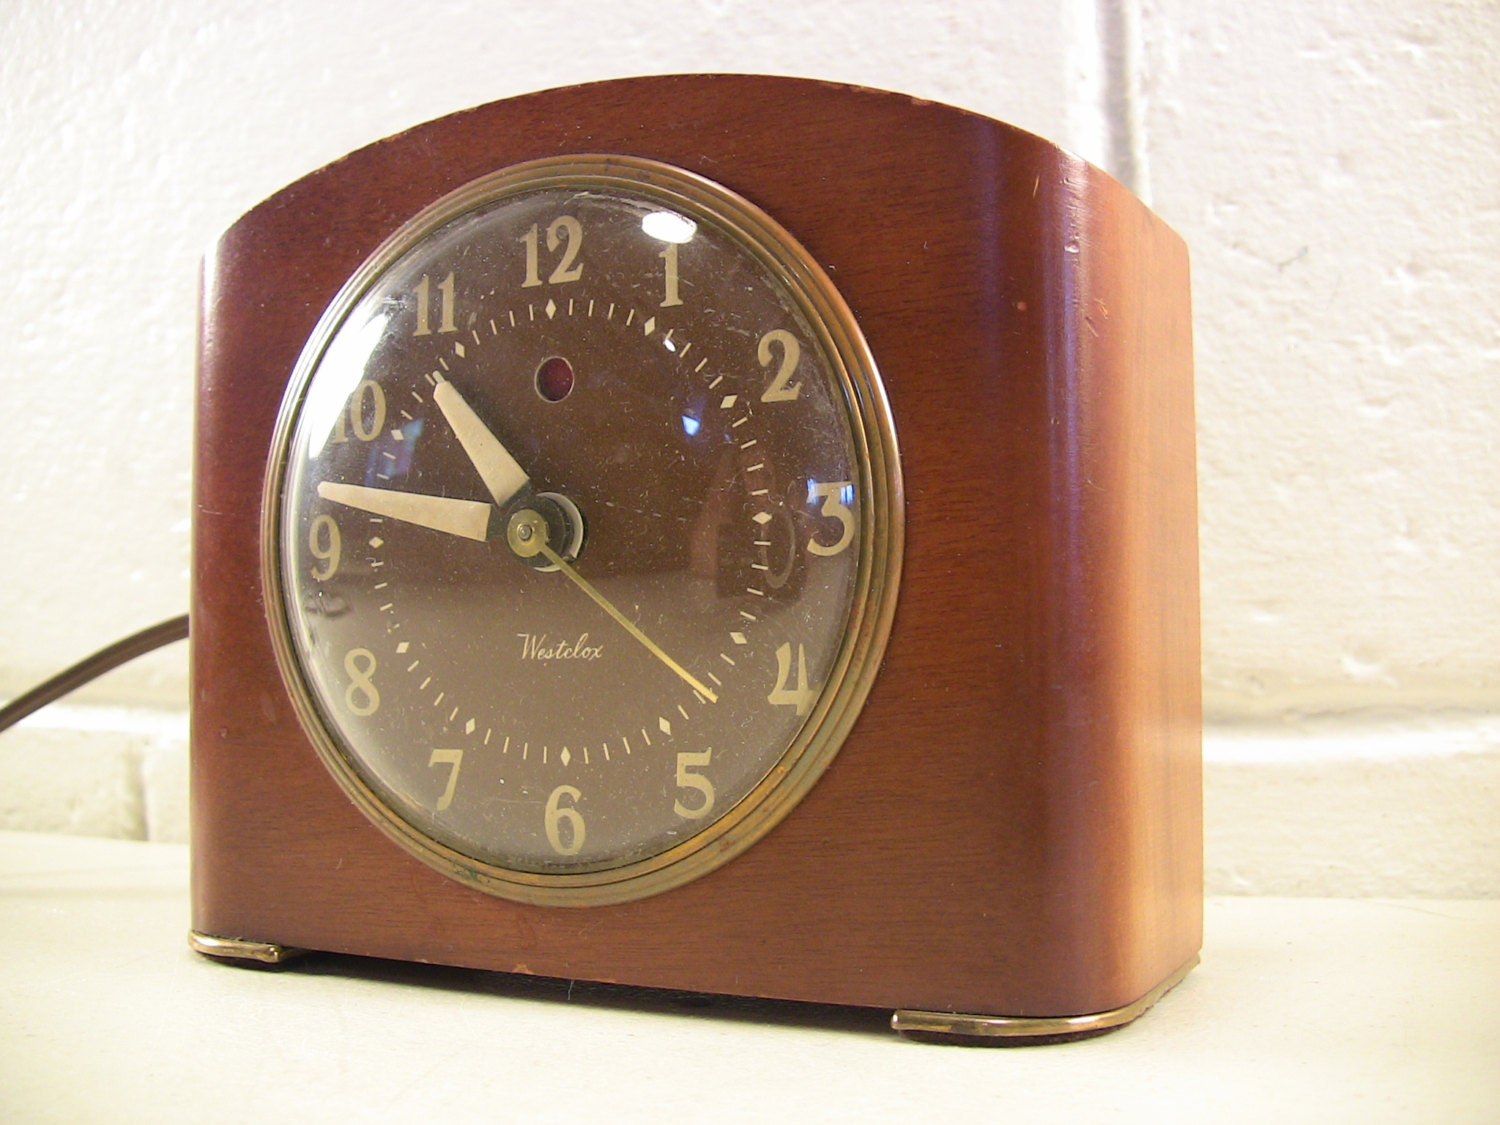 Vintage alarm clock modern art deco clock electric alarm clock Art deco alarm clocks